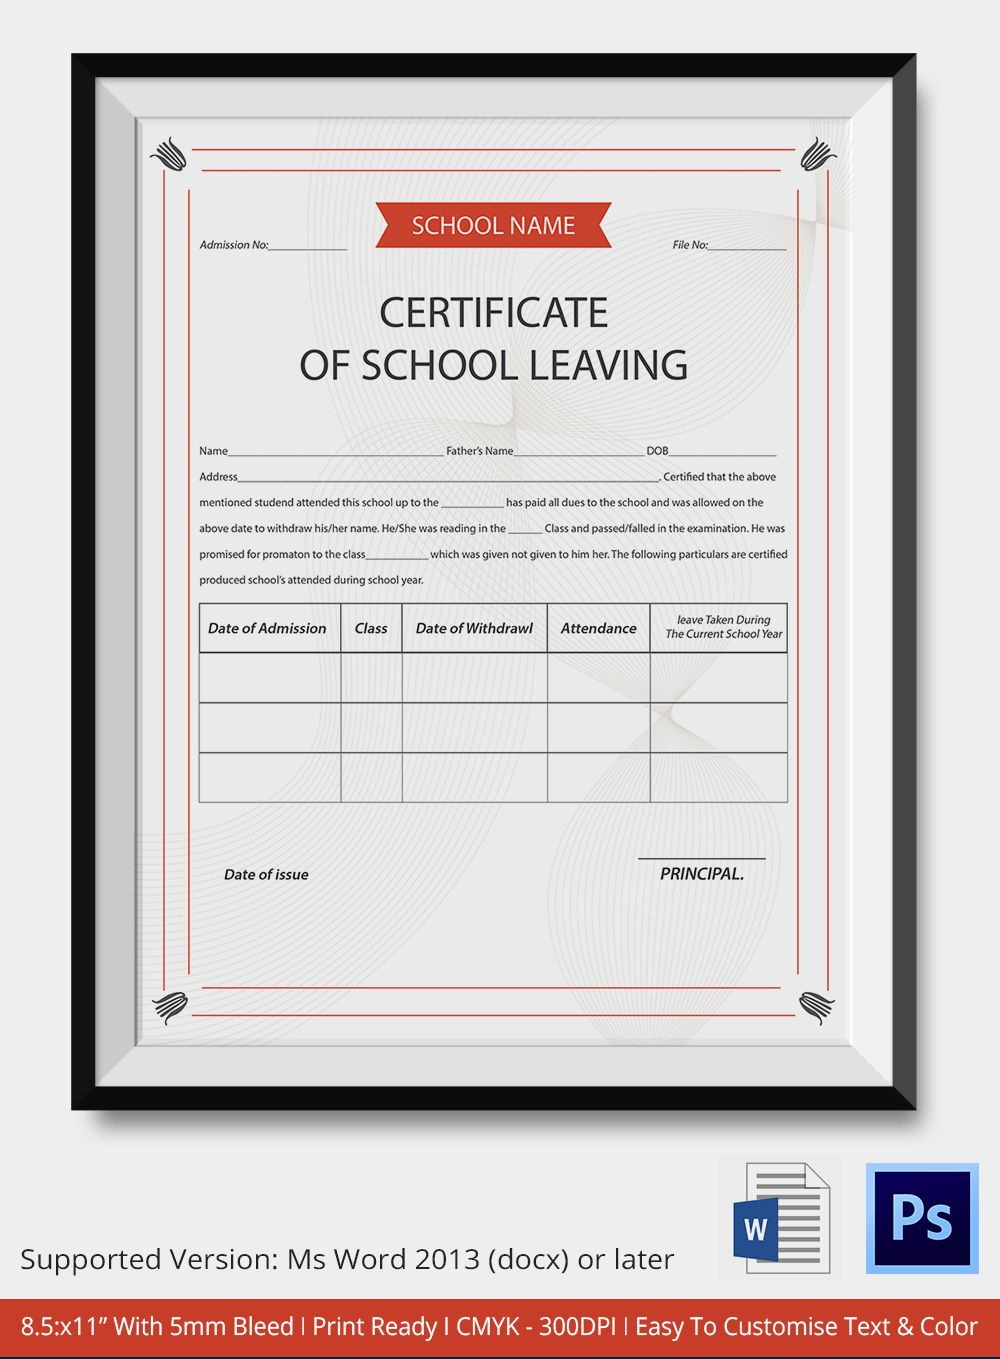 School Leaving Certificate Template | Certificate Templates - Commitment Certificate Free Printable